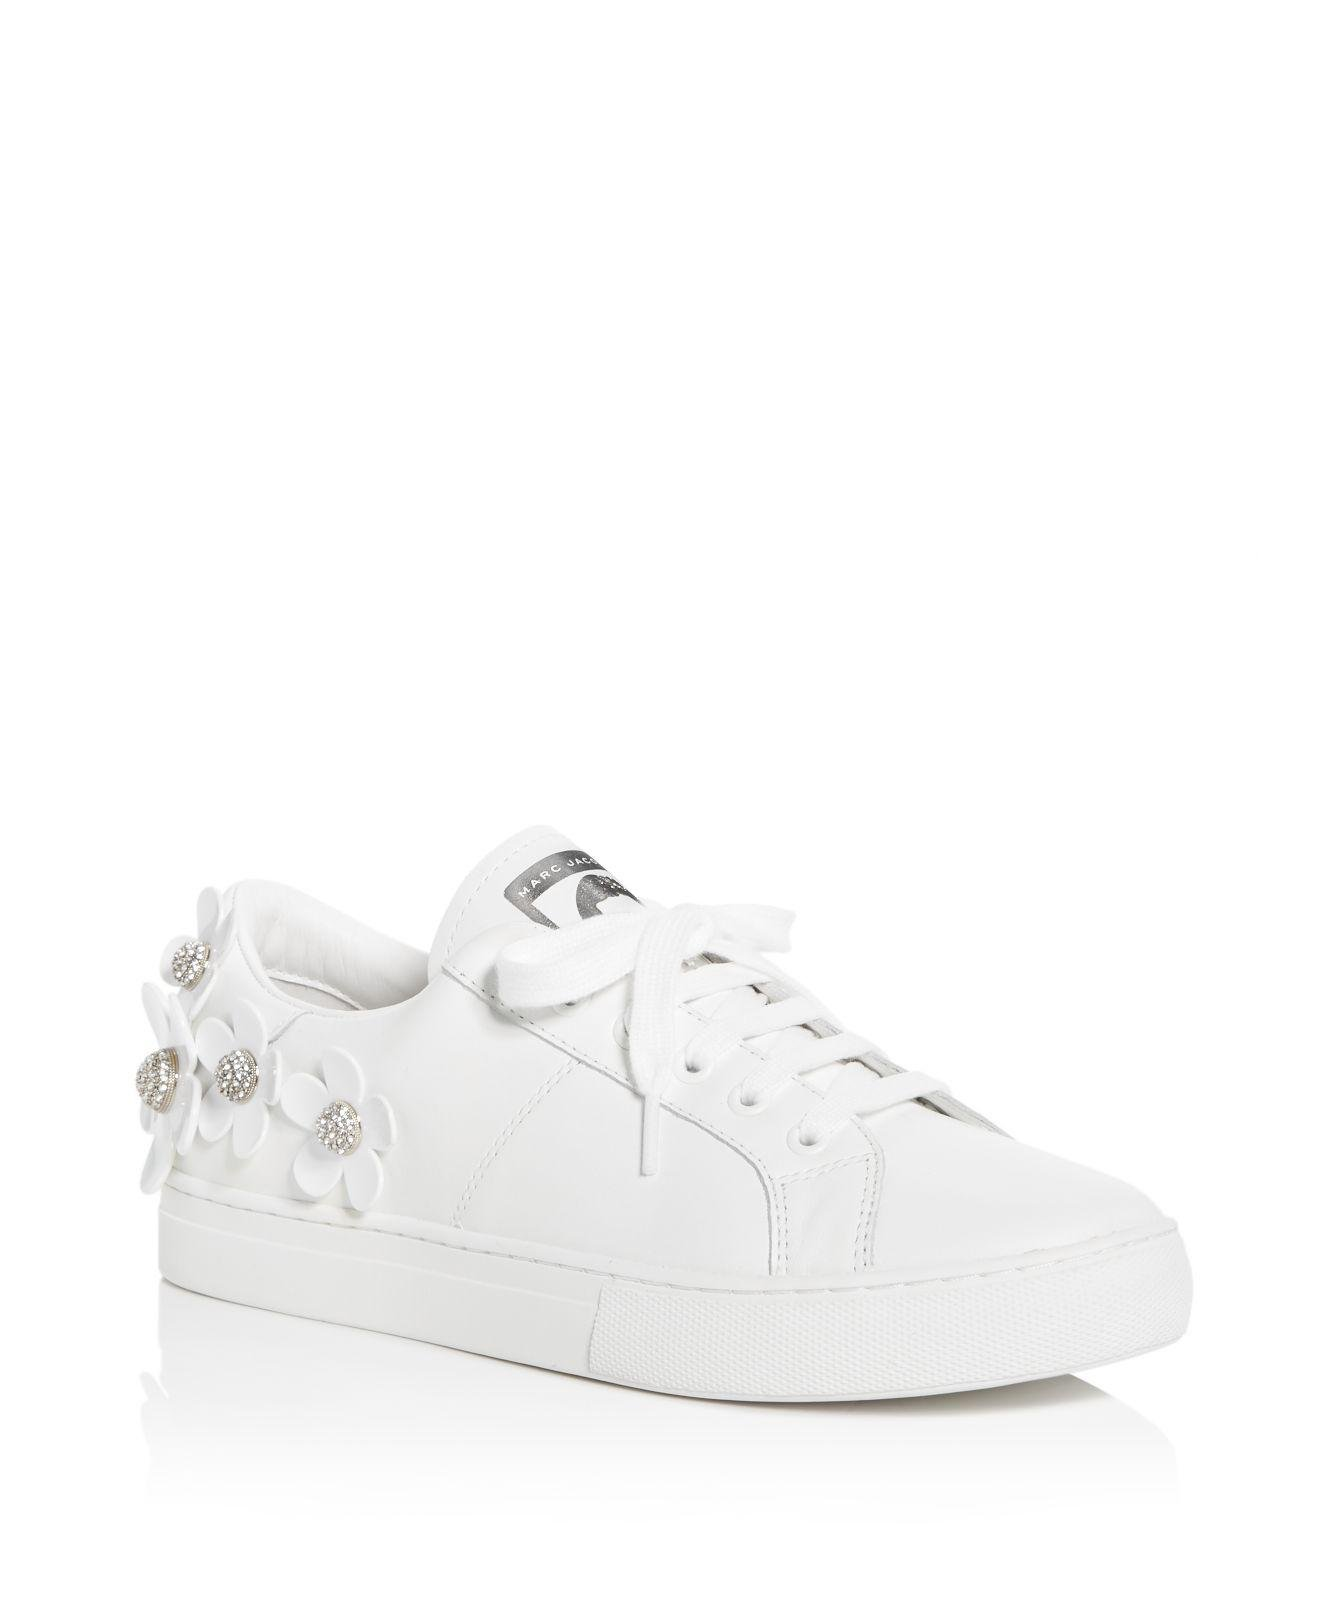 Marc Jacobs Women's Daisy Embellished Patent Leather Lace Up Sneakers J7FrH